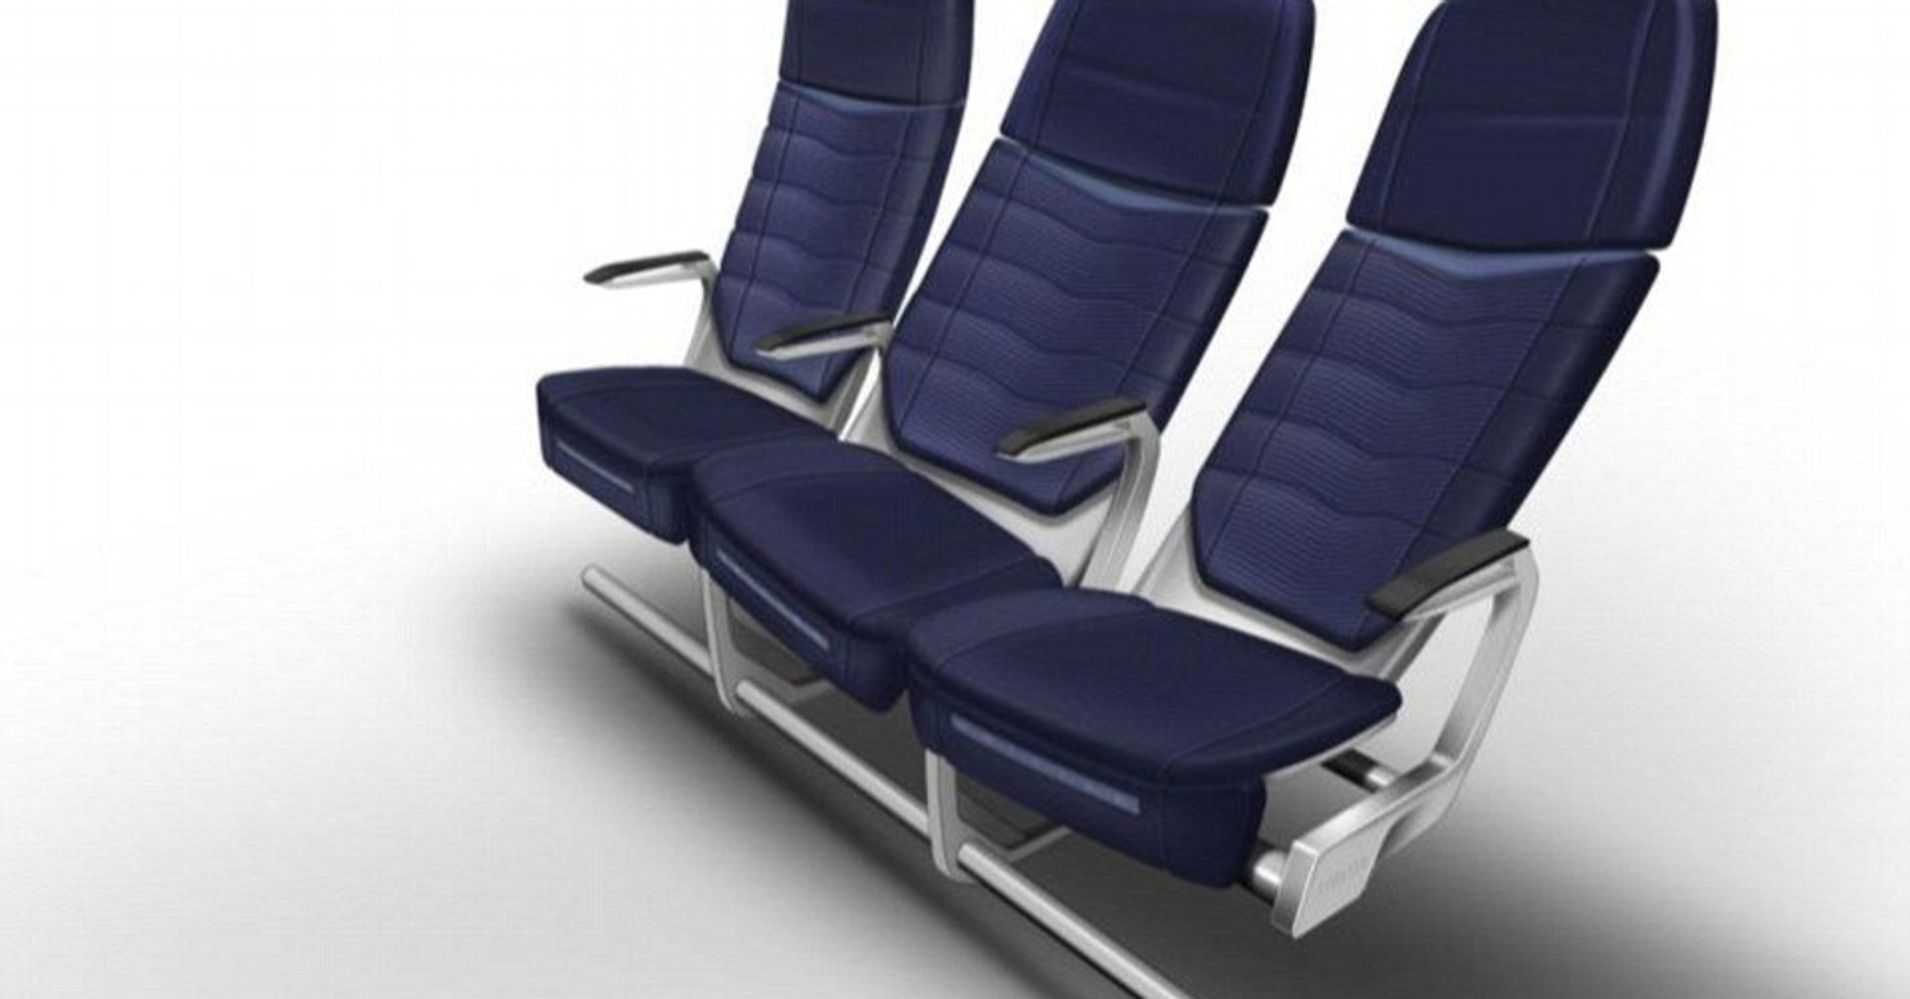 Twister Seat Could Make Flying Coach Way More Comfortable ...